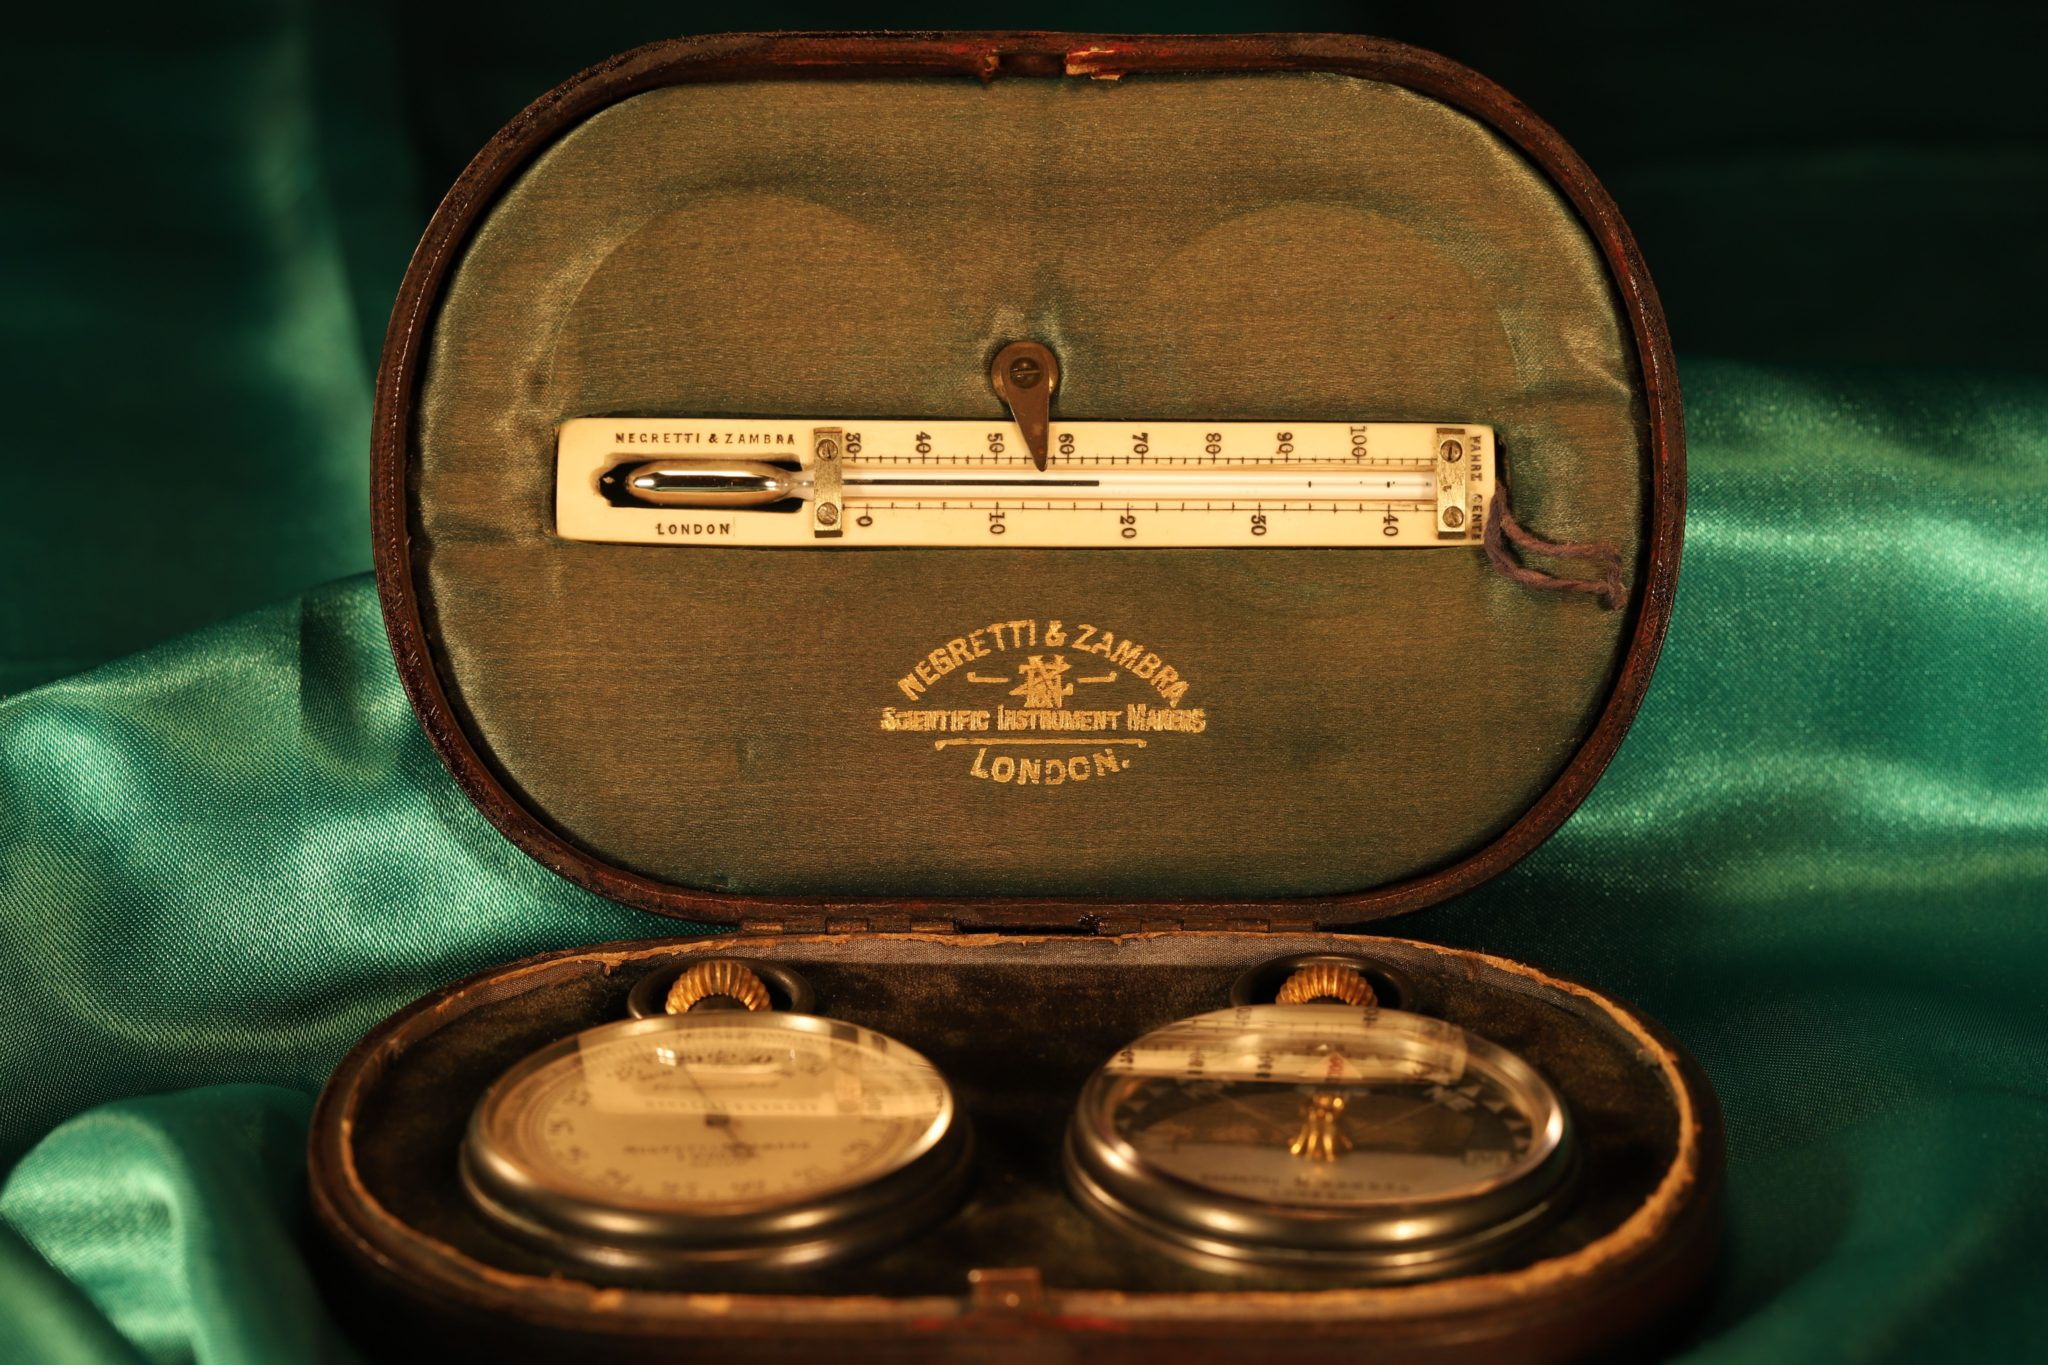 Image of Negretti & Zambra Pocket Barometer Travel Compendium No 20140 c1900